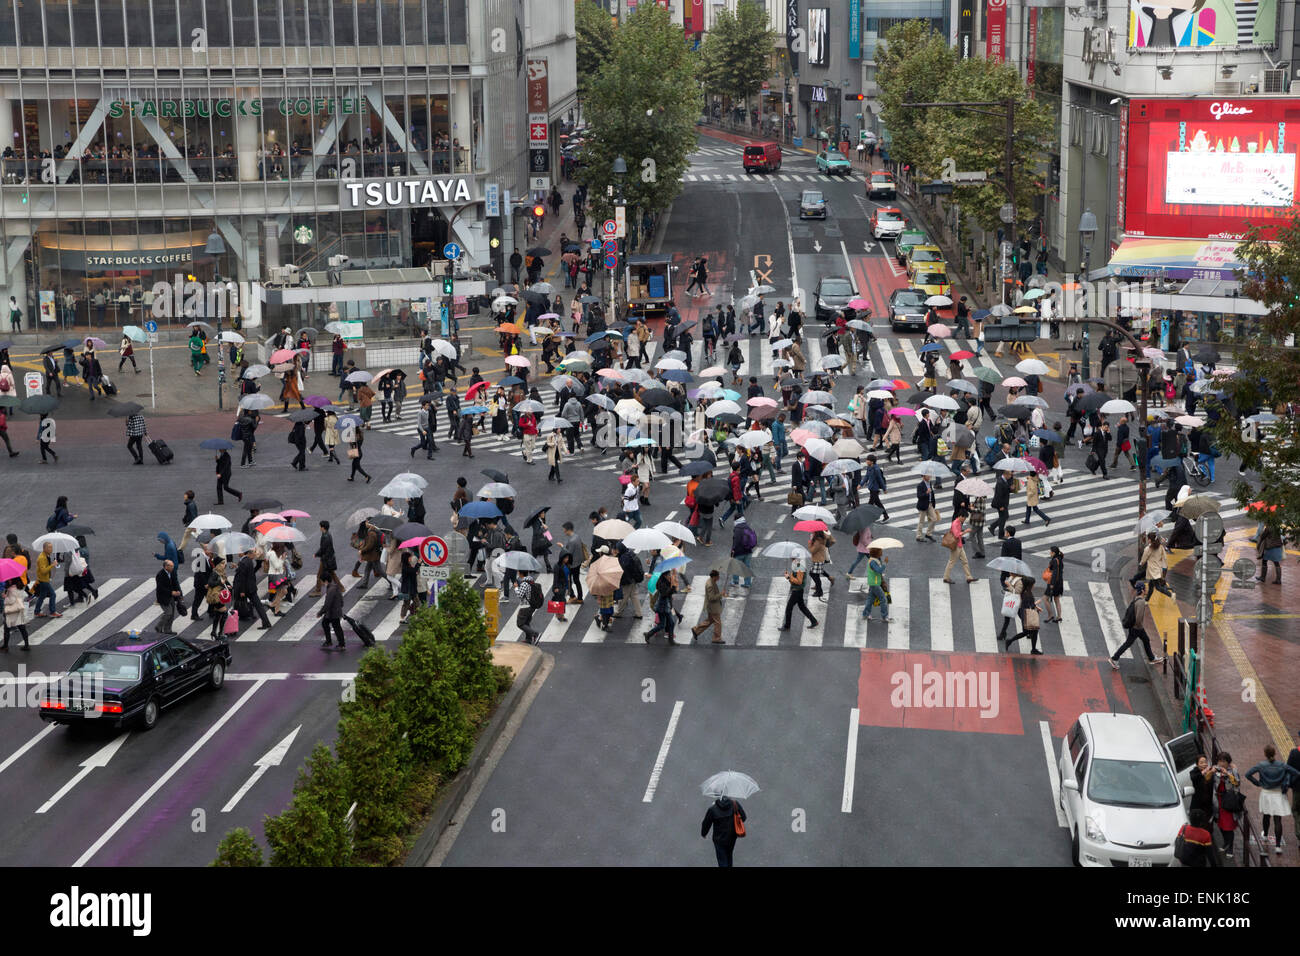 Shibuya crossing (The Scramble), Shibuya Station, Shibuya, Tokyo, Japan, Asia Stock Photo